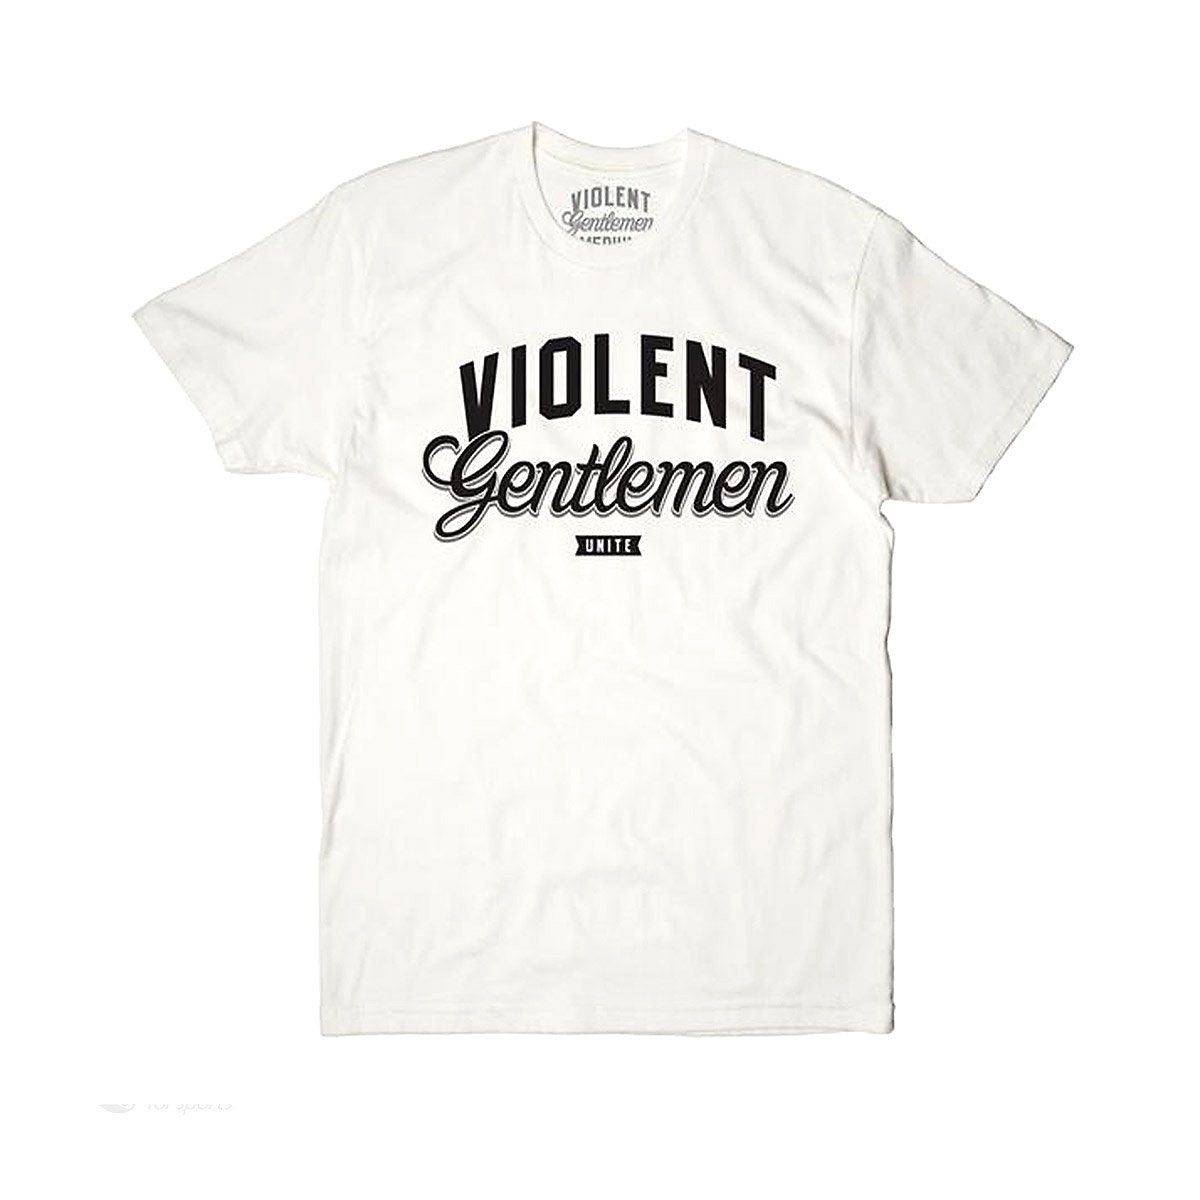 Violent Gentlemen Unite Men's Shirt